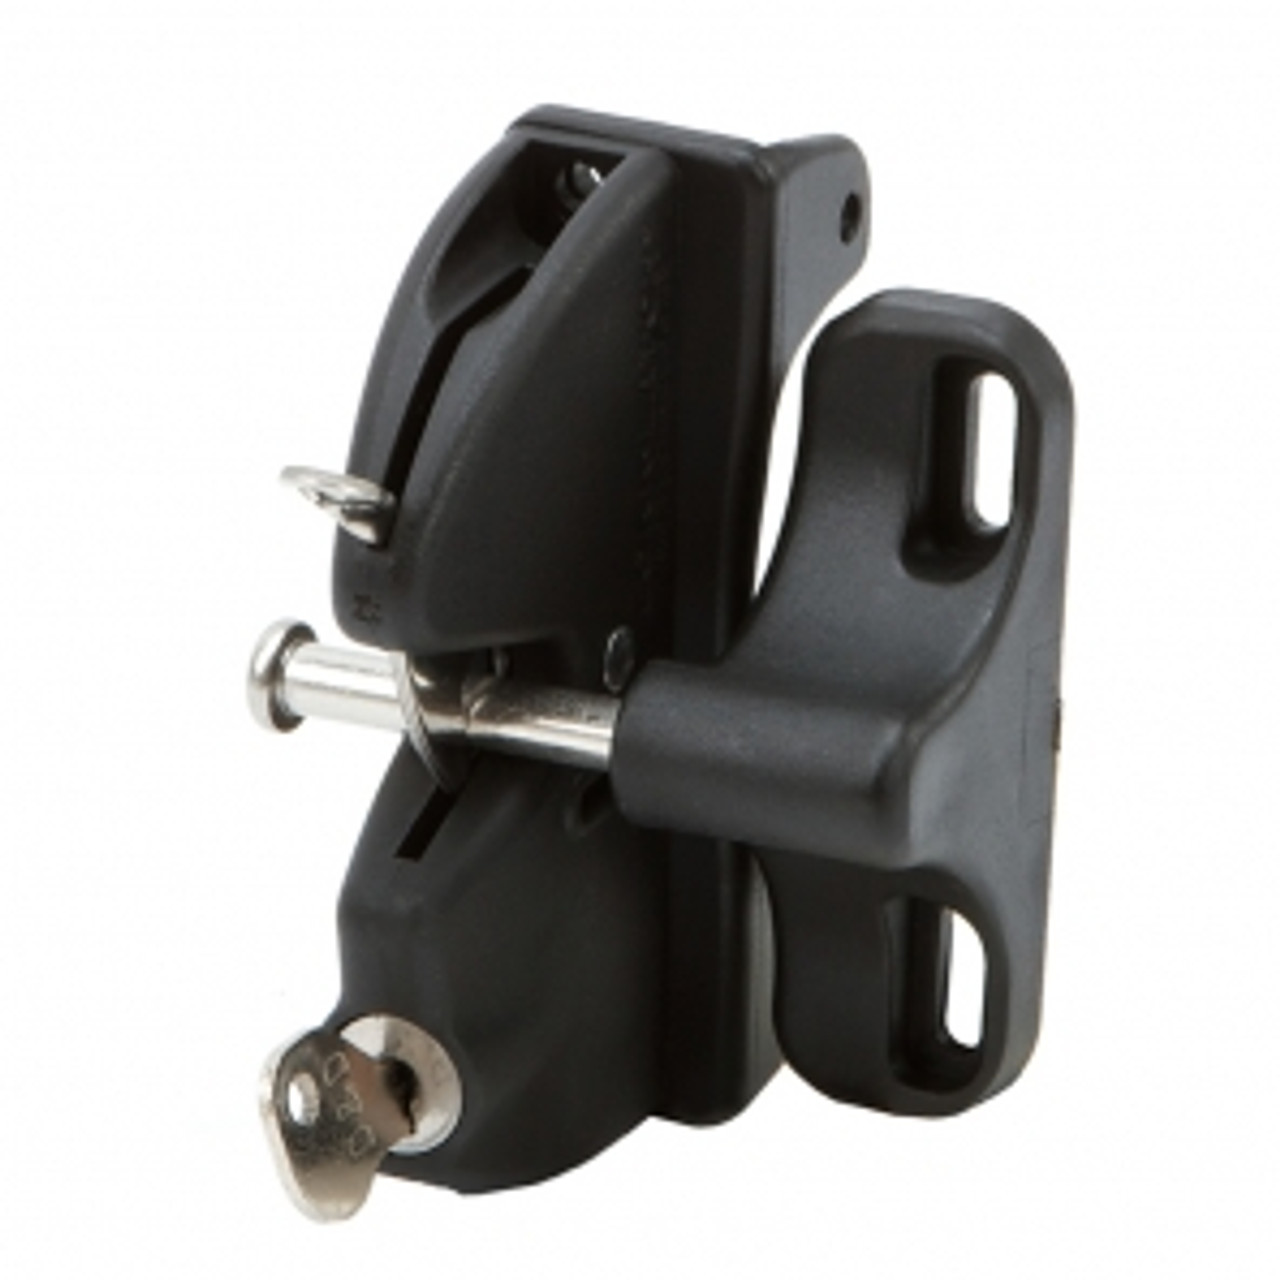 LokkLatch Series 2 Residential Gravity Latch